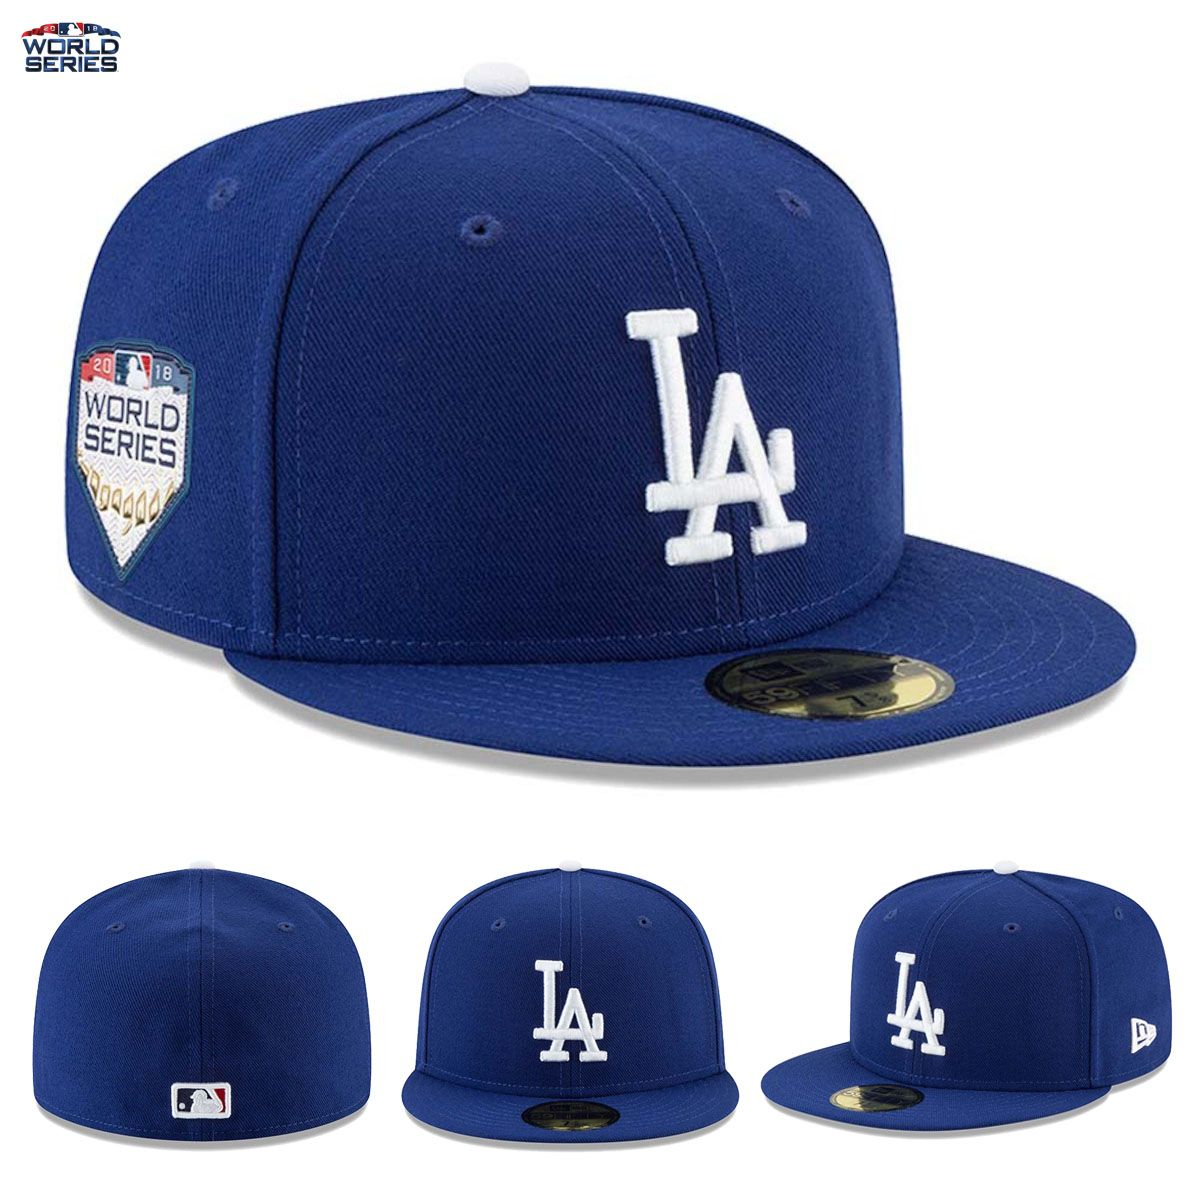 ac83488d5de NEW Los Angeles Dodgers New Era 59FIFTY Fitted Hat Cap 2018 World ...